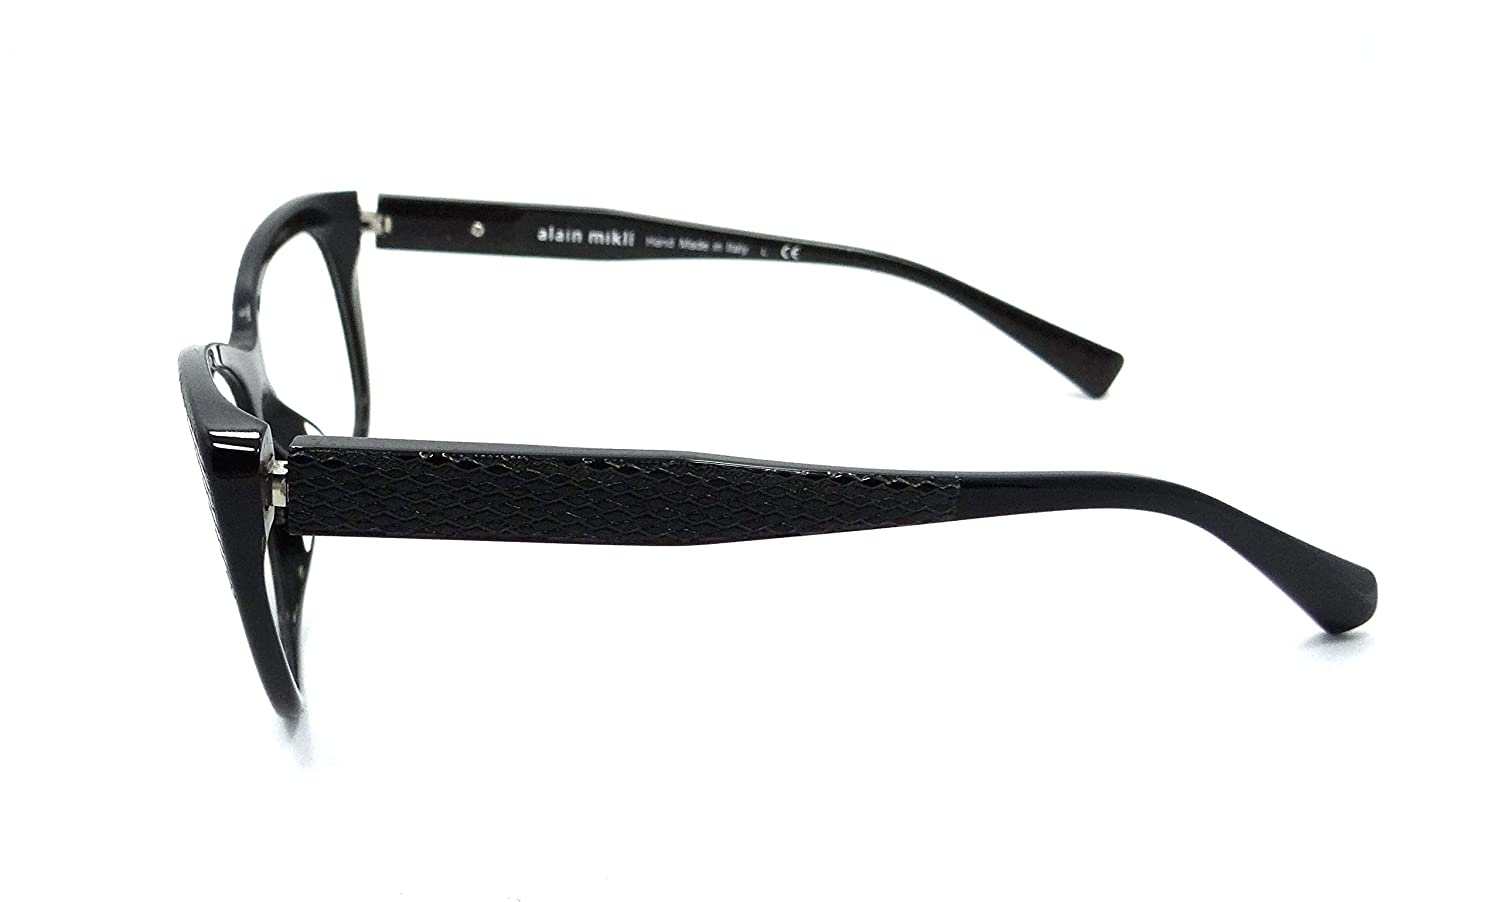 37ff47332d Amazon.com  Alain Mikli Cateye Eyeglasses A01346M B0J2 Size  52mm Black  1346M  Clothing